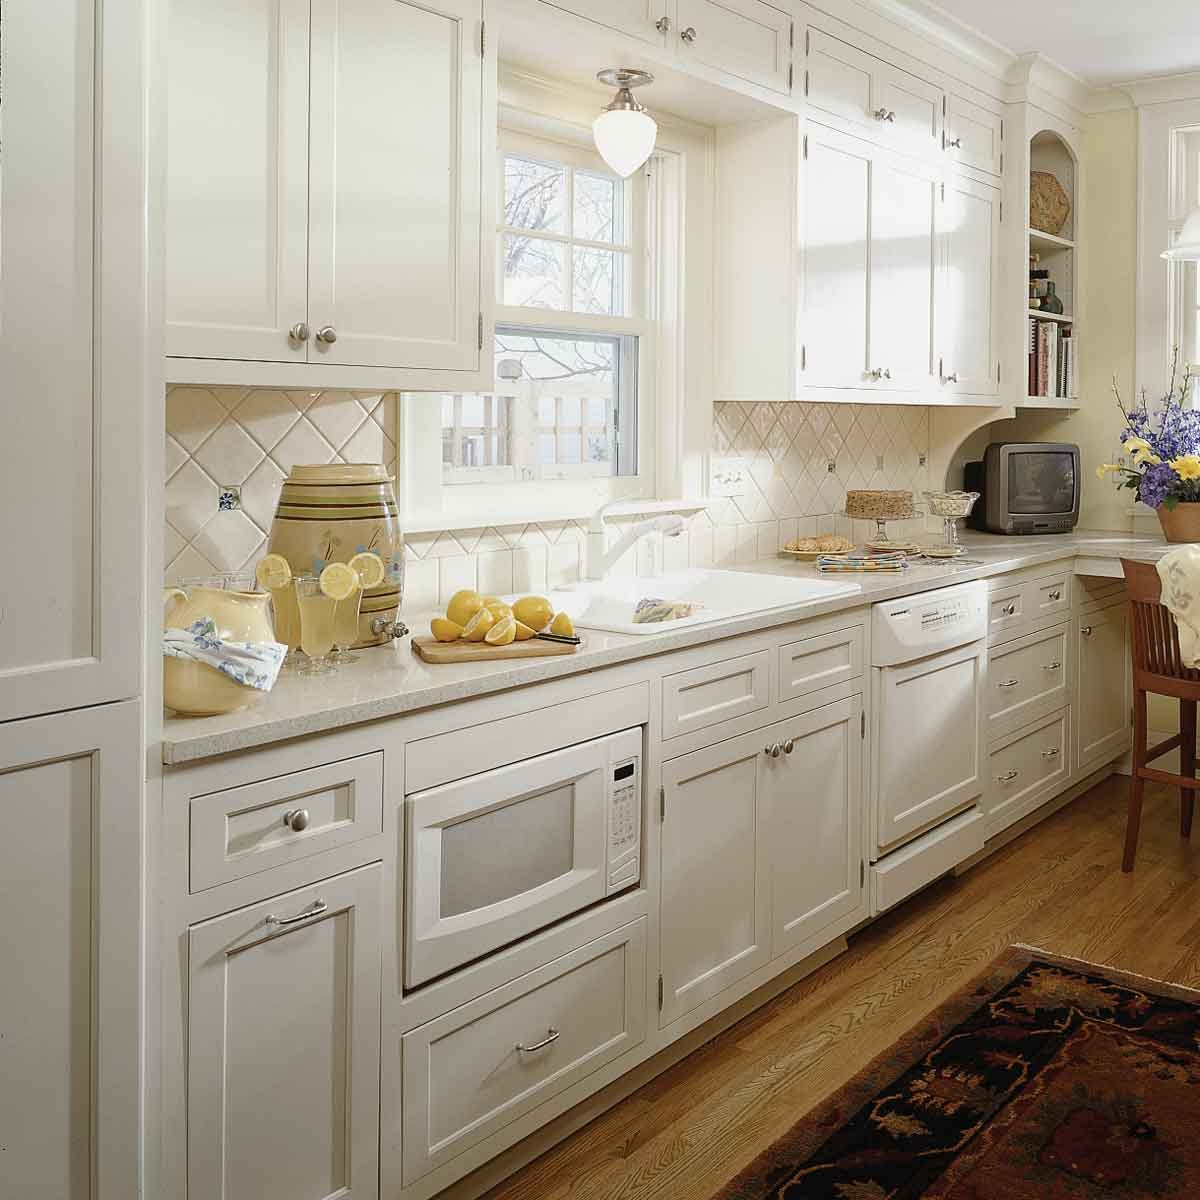 10 Small Kitchen Ideas To Maximize Space The Family